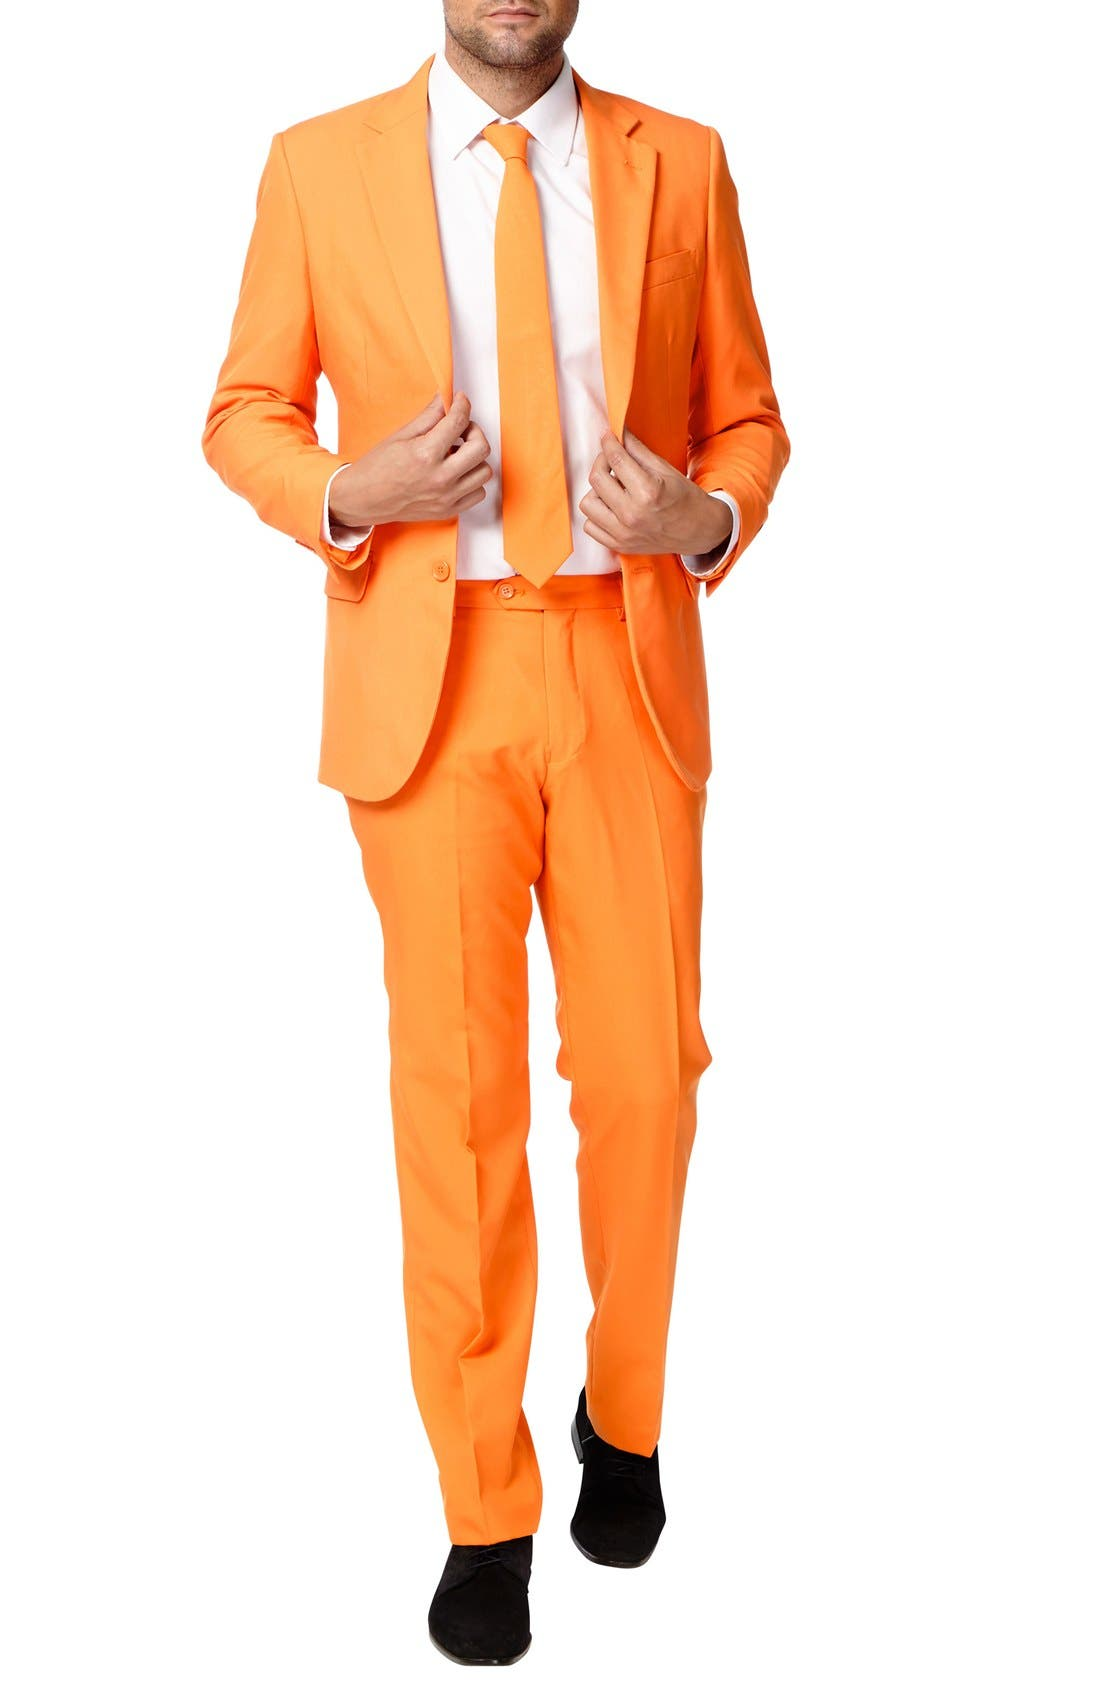 Alternate Image 1 Selected - OppoSuits 'The Orange' Trim Fit Two-Piece Suit with Tie